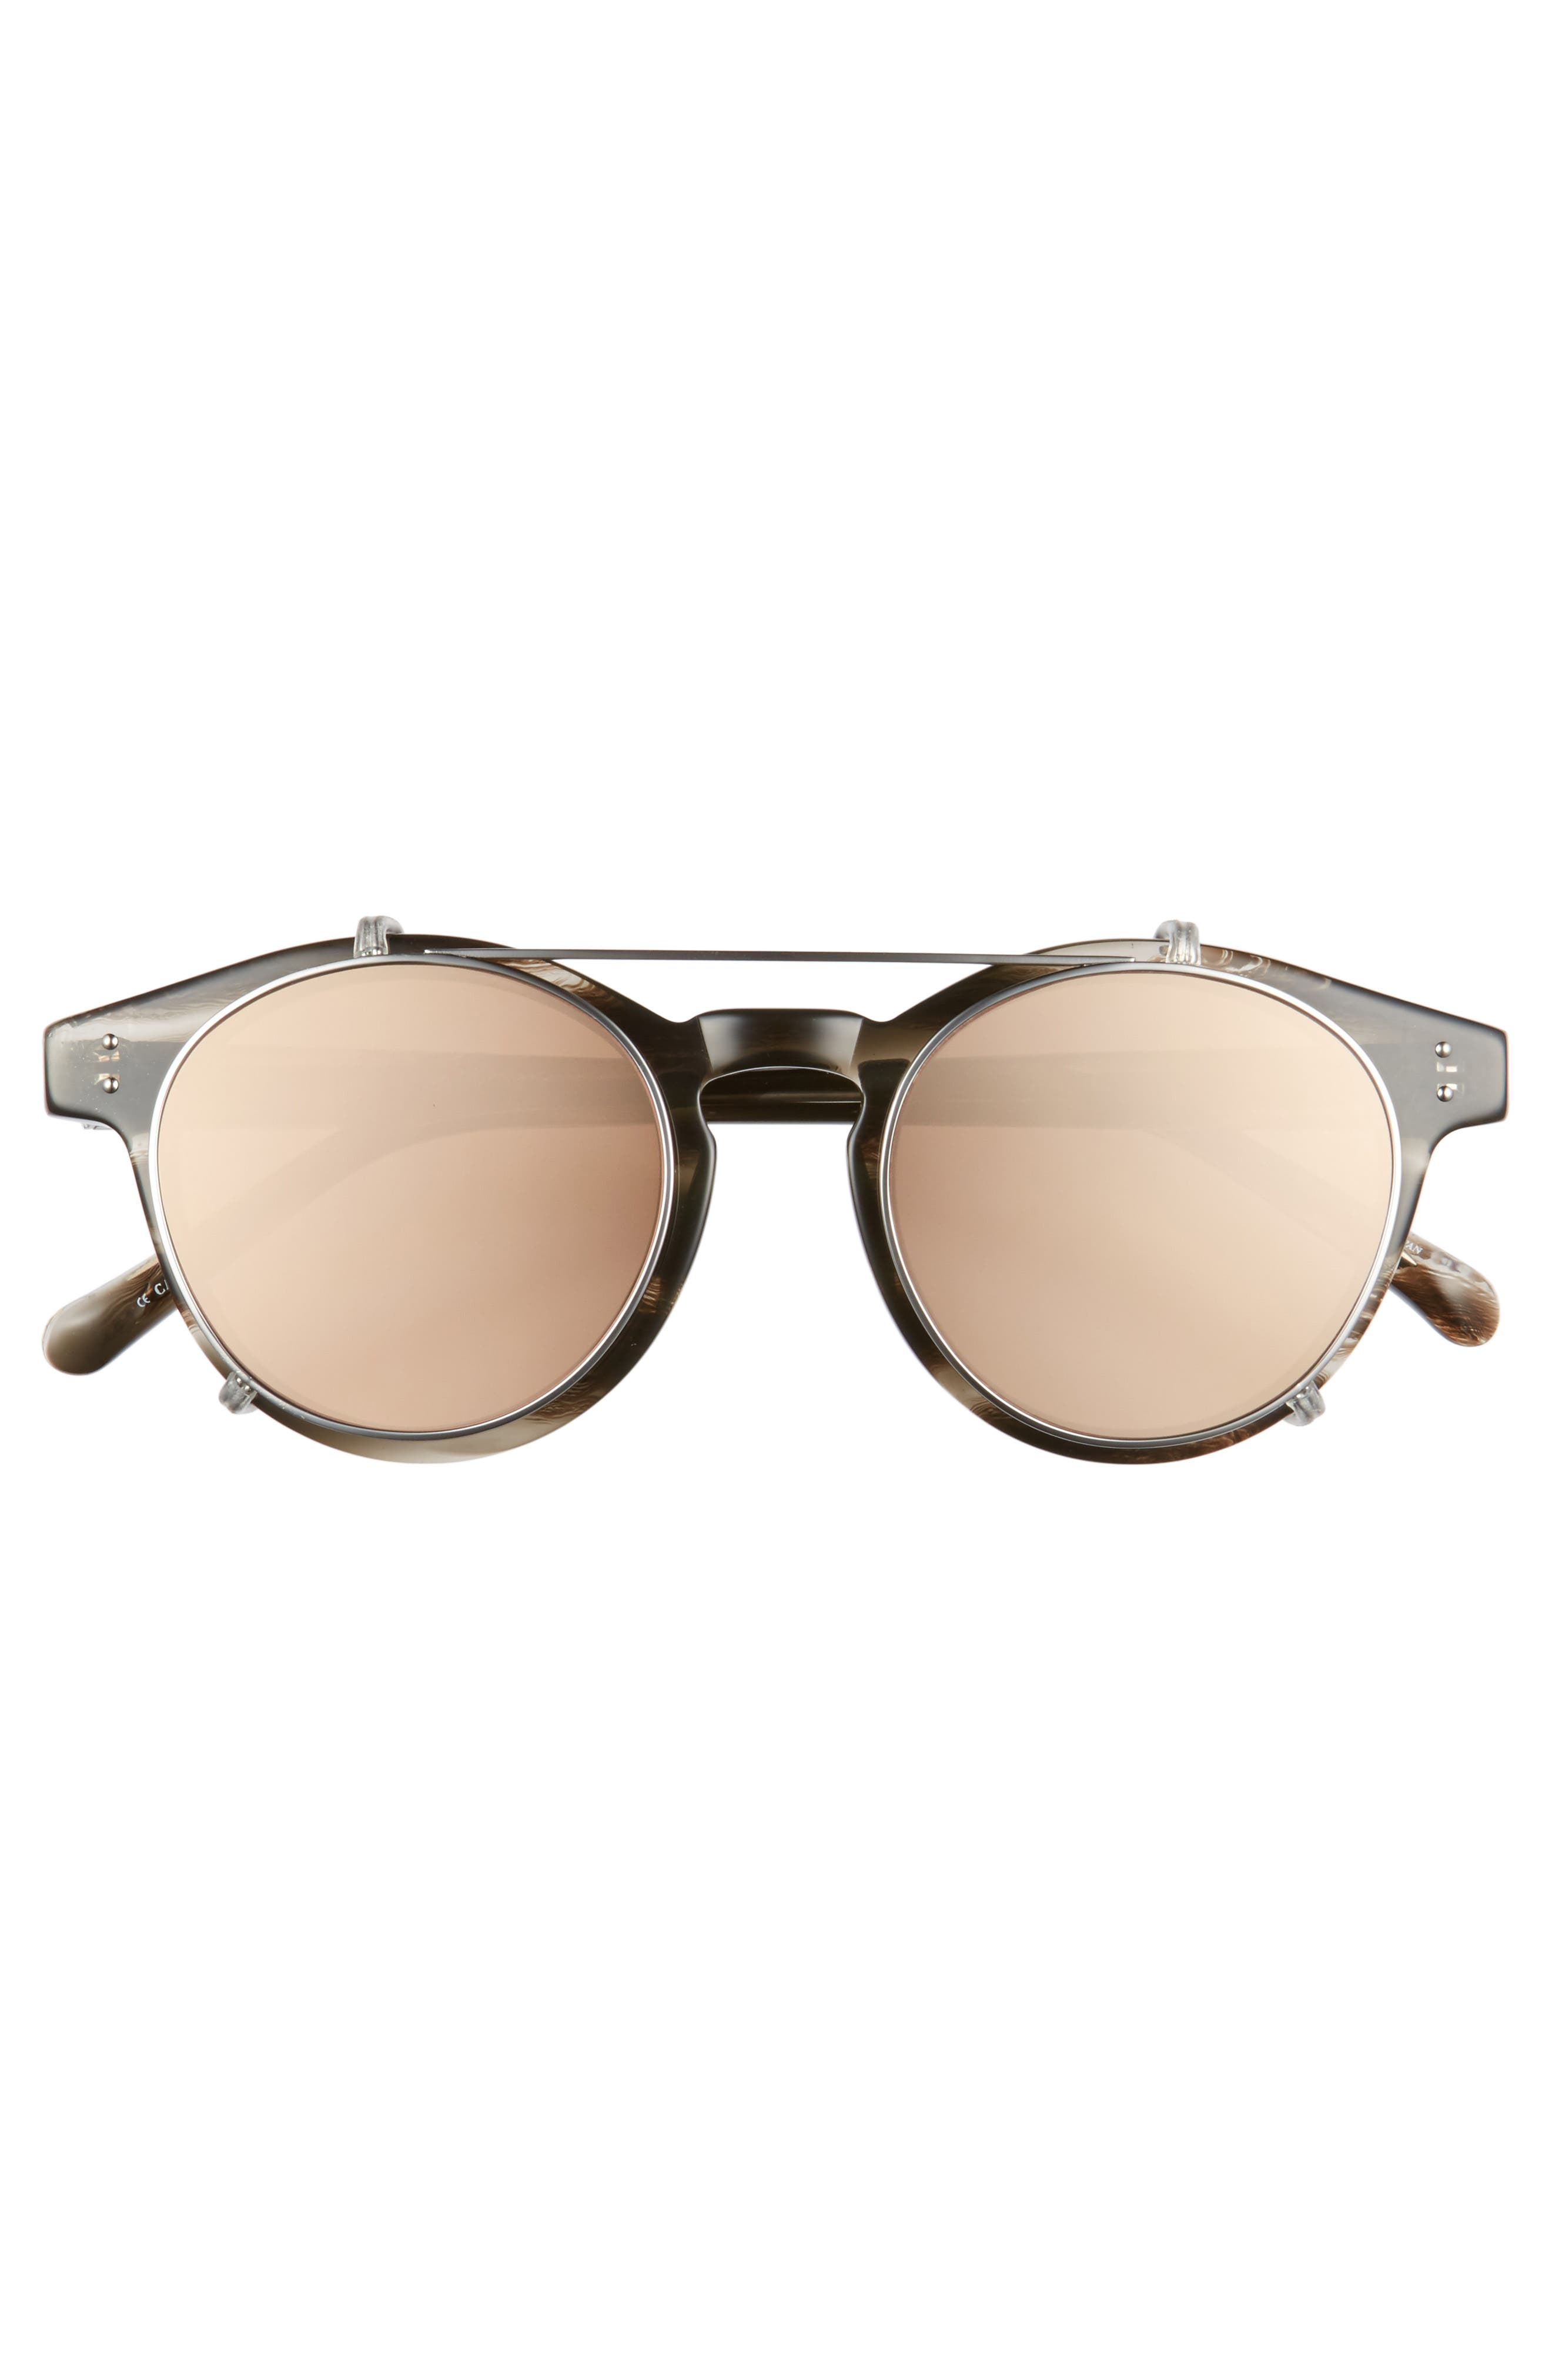 47mm Optical Glasses with Clip-On 18 Karat Rose Gold Trim Sunglasses,                             Alternate thumbnail 3, color,                             020